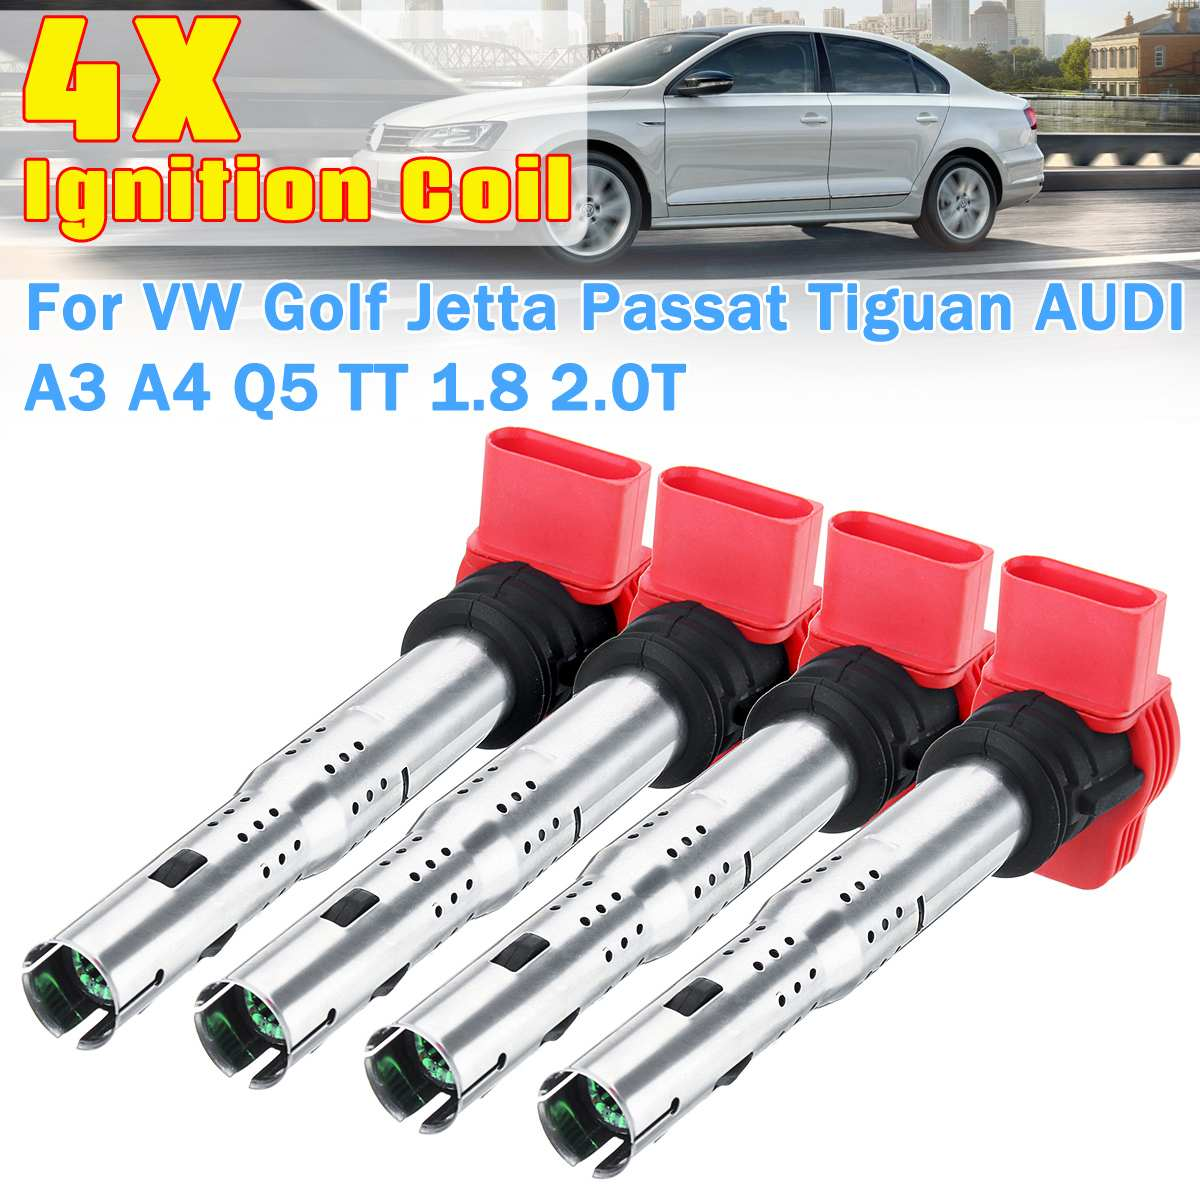 4Pcs 06E905115A/B/C/D/E Universal Ignition Coil for VW for Golf for Jetta for Passat for Tiguan for AUDI A3 A4 Q5 TT 1.8 2.0T